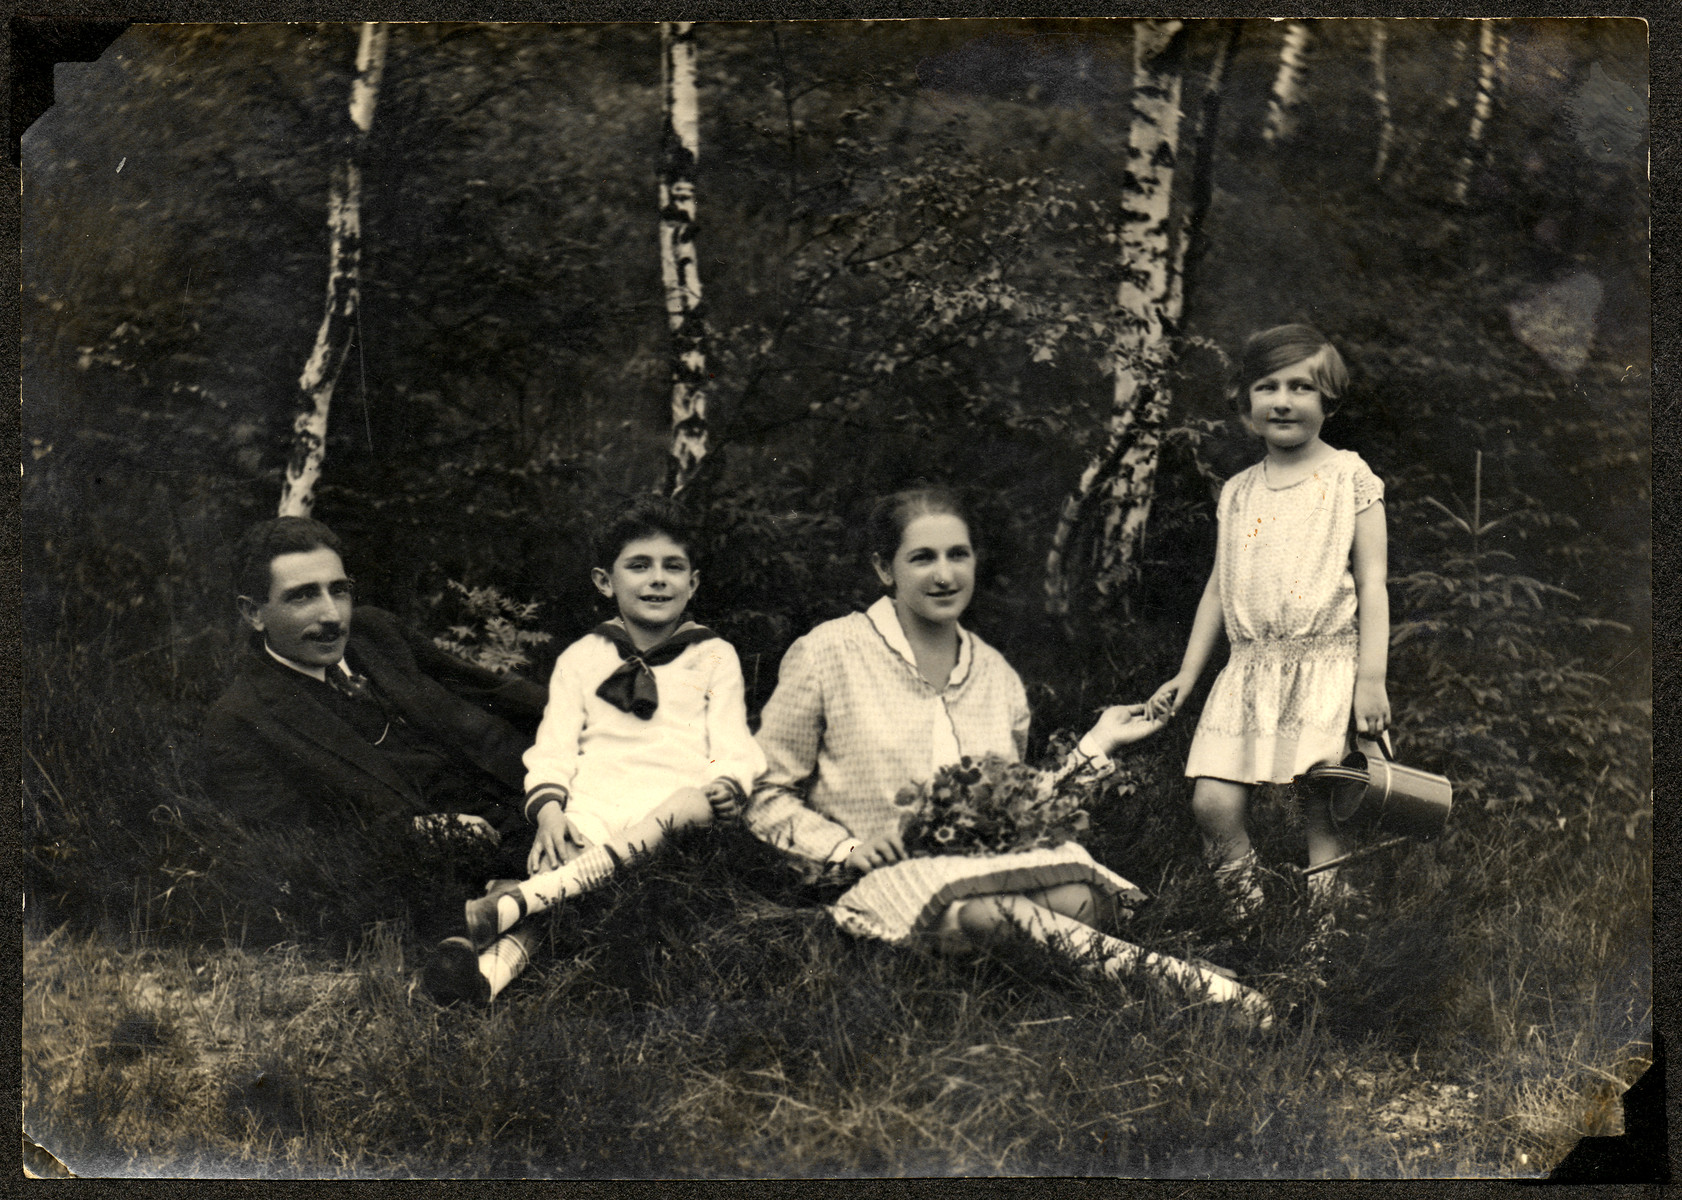 The Weiss family goes for an outing in the woods near Karlovy Vary.  From left to right are Emil, Egon, Olga and Edith Weiss.